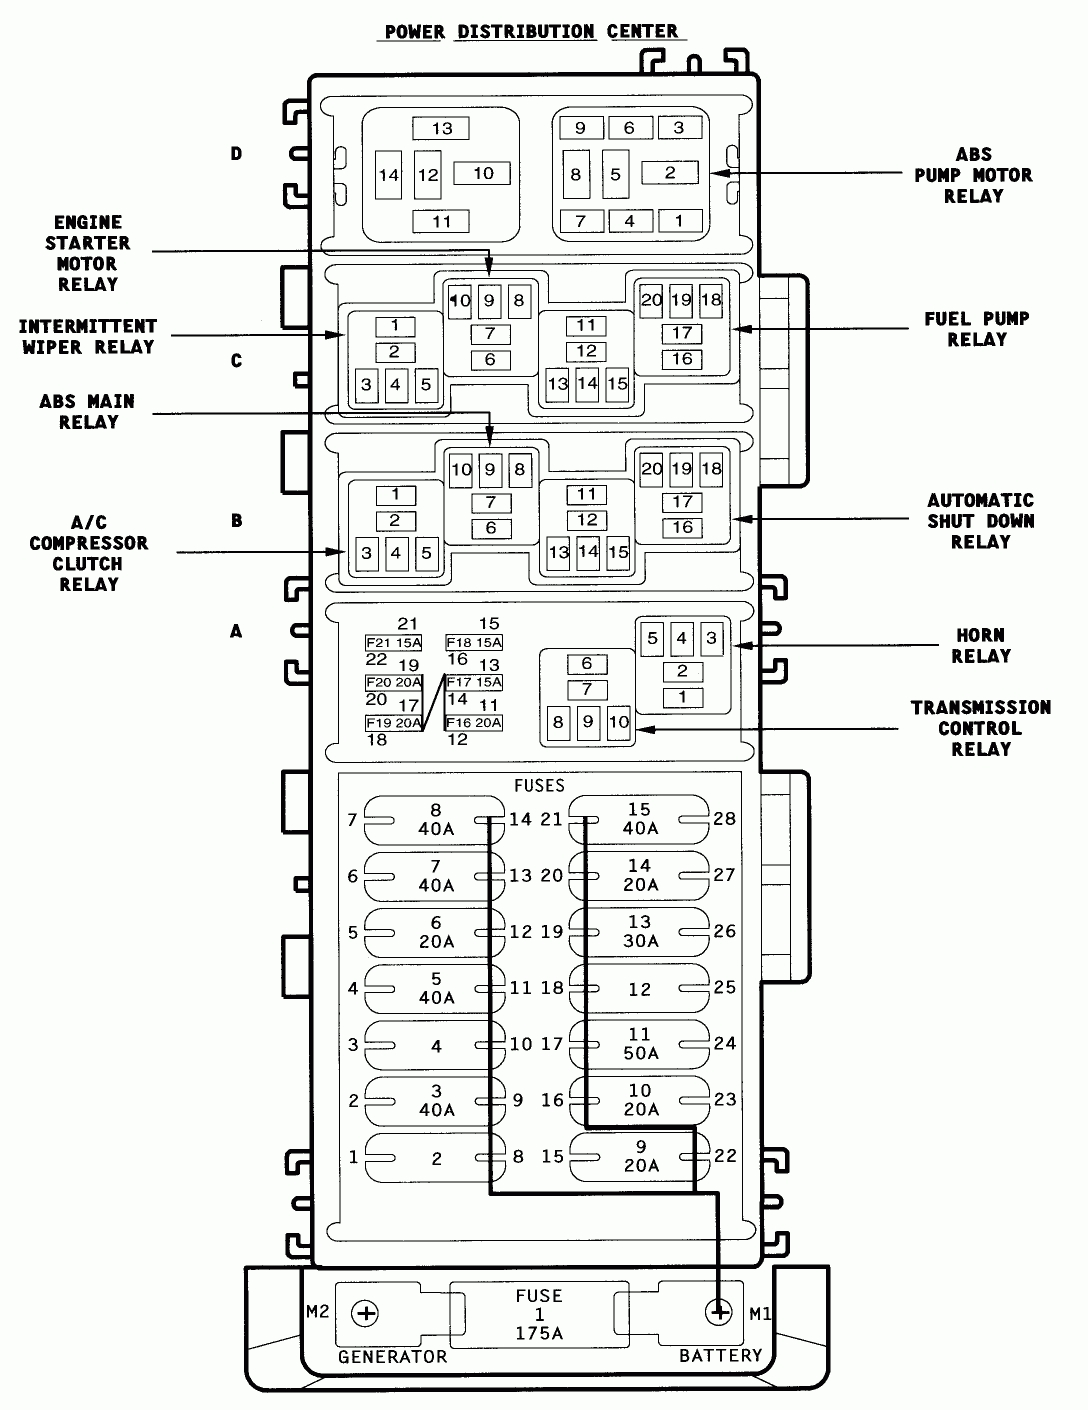 fuse box jeep cherokee | make-industry wiring diagram meta |  make-industry.perunmarepulito.it  make-industry.perunmarepulito.it